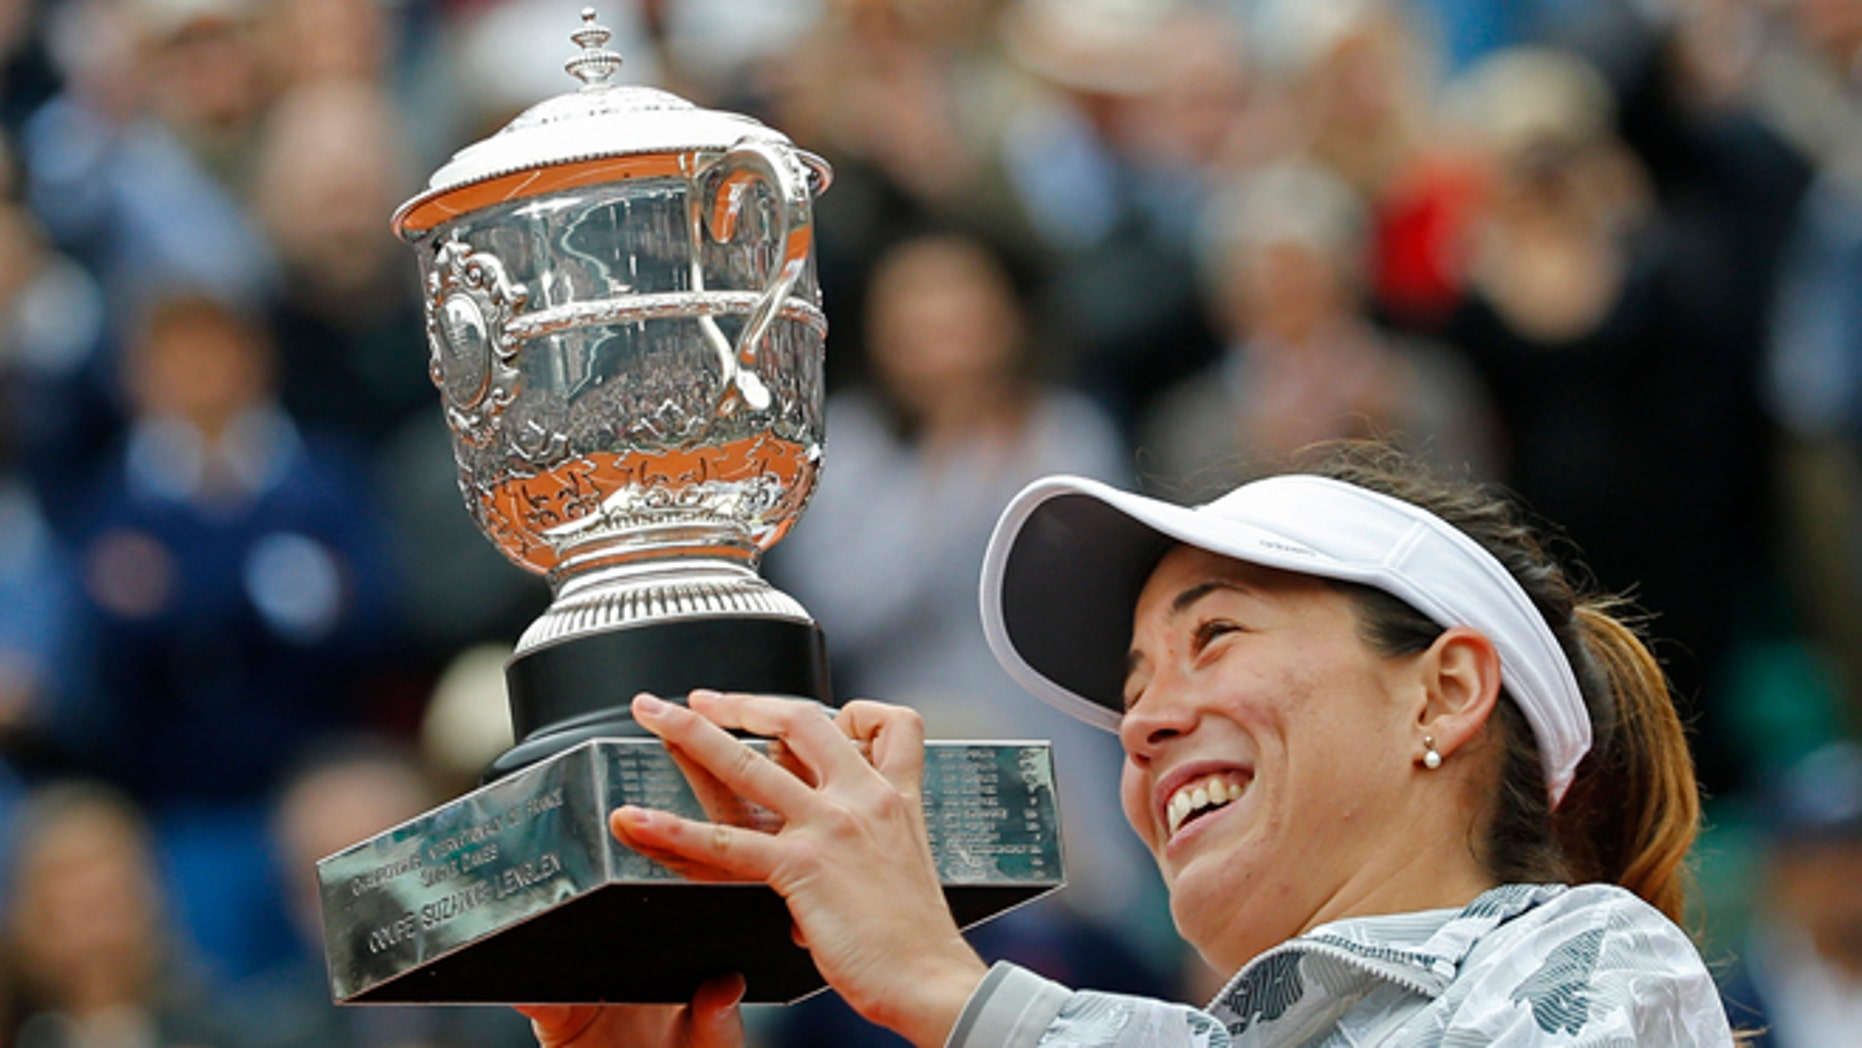 Spain's Garbine Muguruza holds the trophy after winning the final of the French Open tennis tournament against Serena Williams of the U.S. in two sets 7-5, 6-4, at the Roland Garros stadium in Paris, France, Saturday, June 4, 2016. (AP Photo/Alastair Grant)